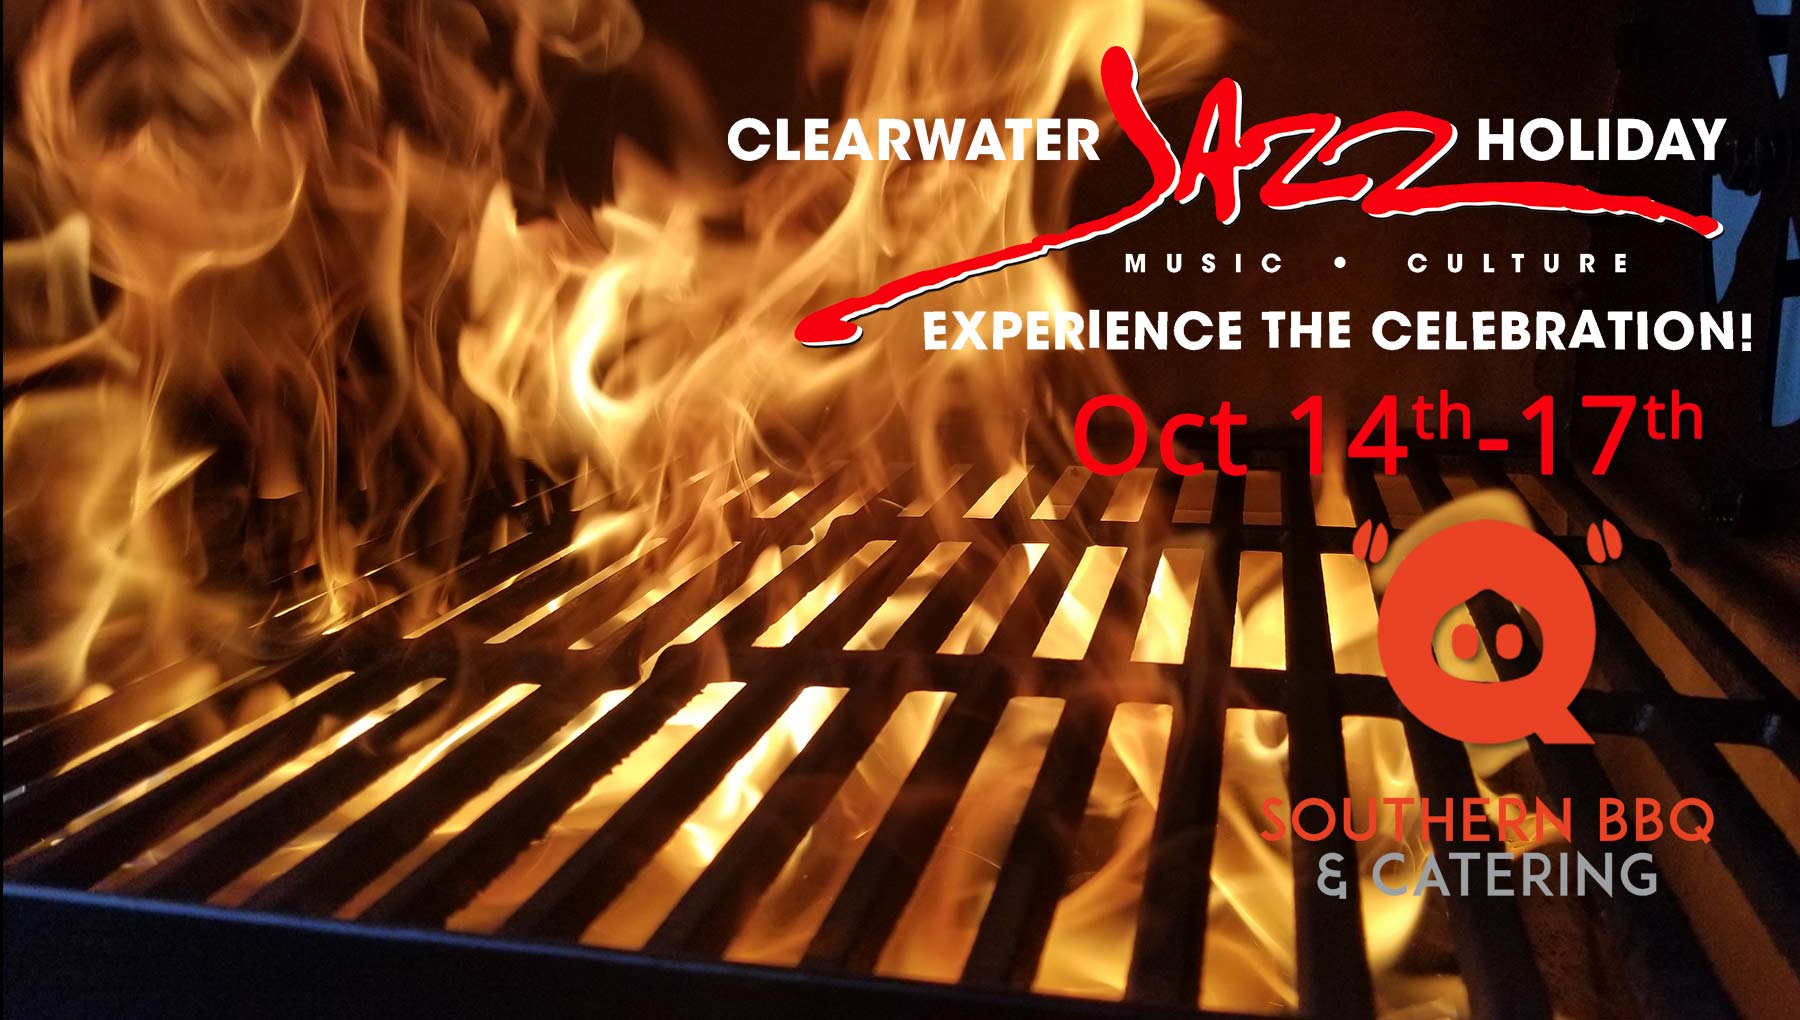 jazz holiday clearwater October 14-17